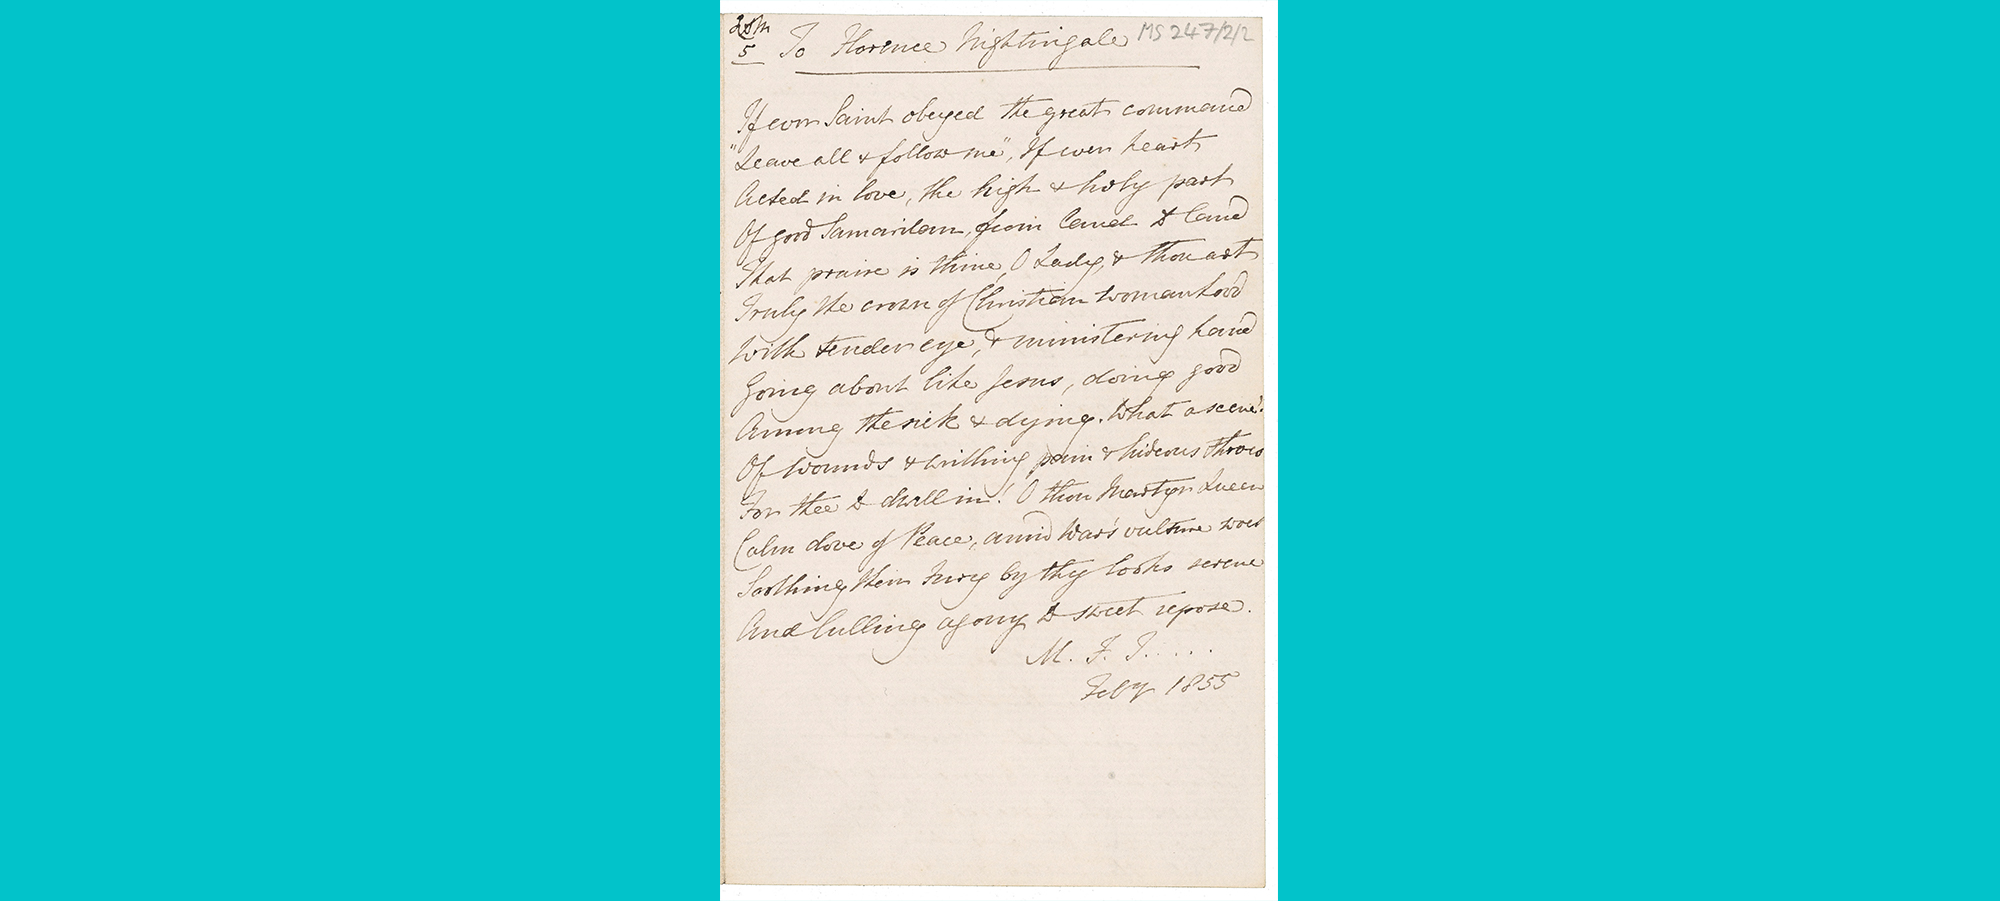 scan of handwritten poem to Florence Nightingale